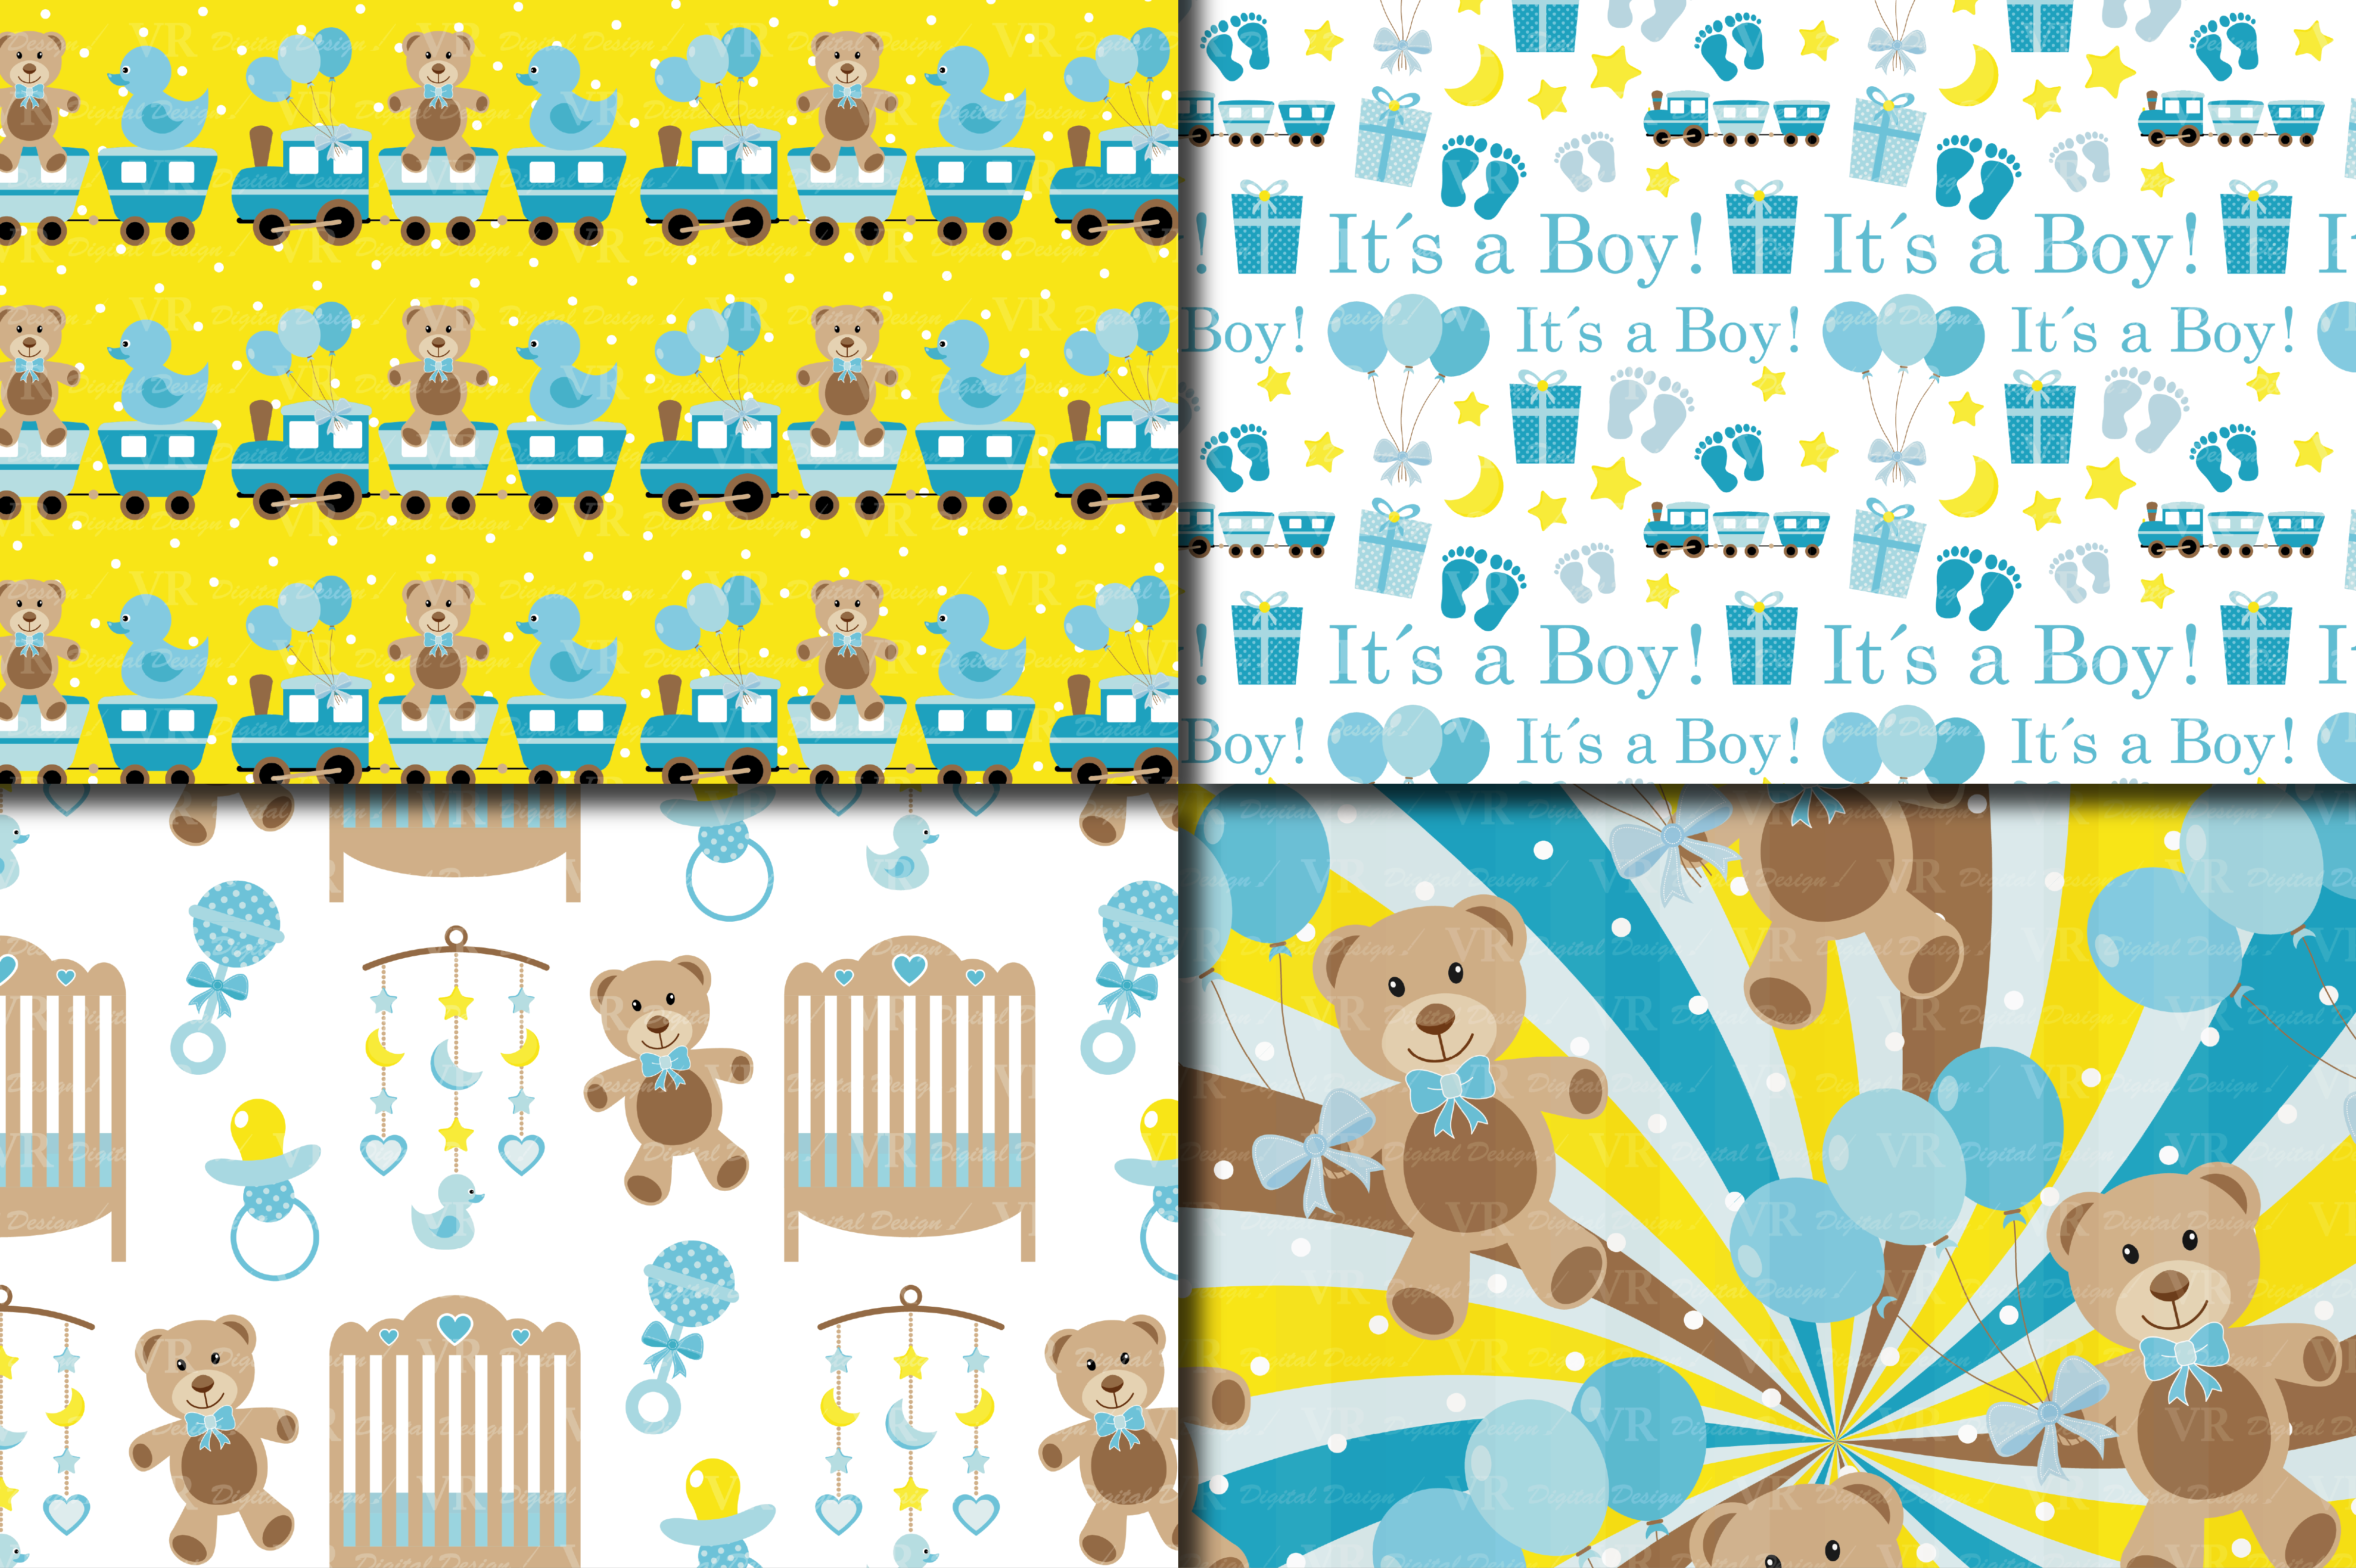 Download Free It S A Boy Digital Paper Pack Graphic By Vr Digital Design for Cricut Explore, Silhouette and other cutting machines.